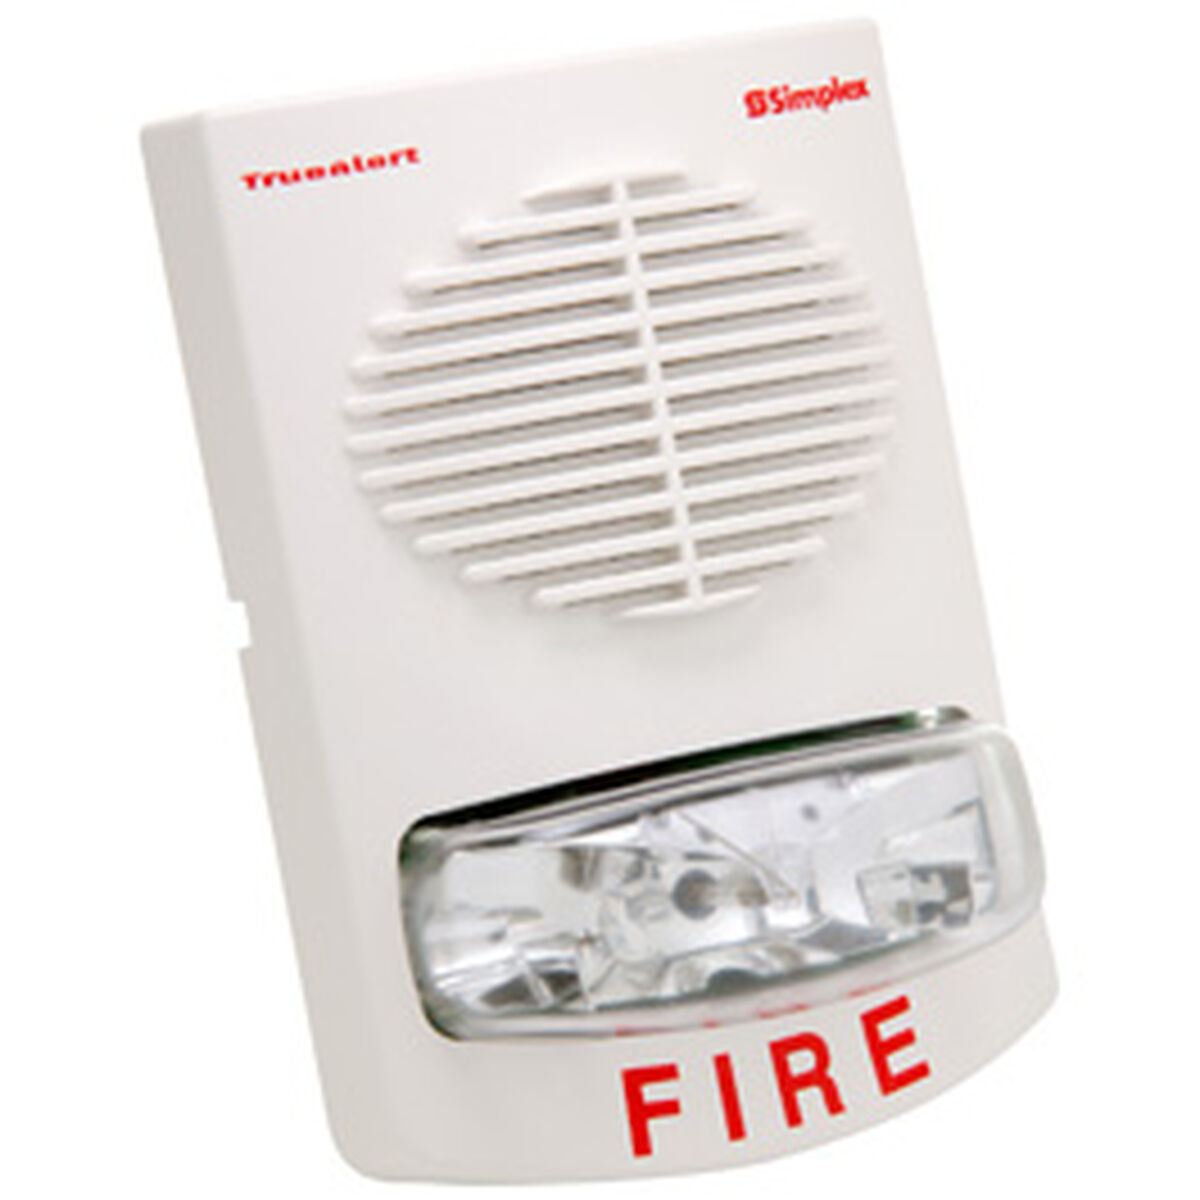 6147391 Fire 4100u Fire Alarm Programmer S Operator S Manual 574 849 Rev D Technical Manuals Online     Tech Man in addition 13772753694 besides respond likewise SPG 4903 9361 together with File SimplexTrueAlert. on fire alarm truealert